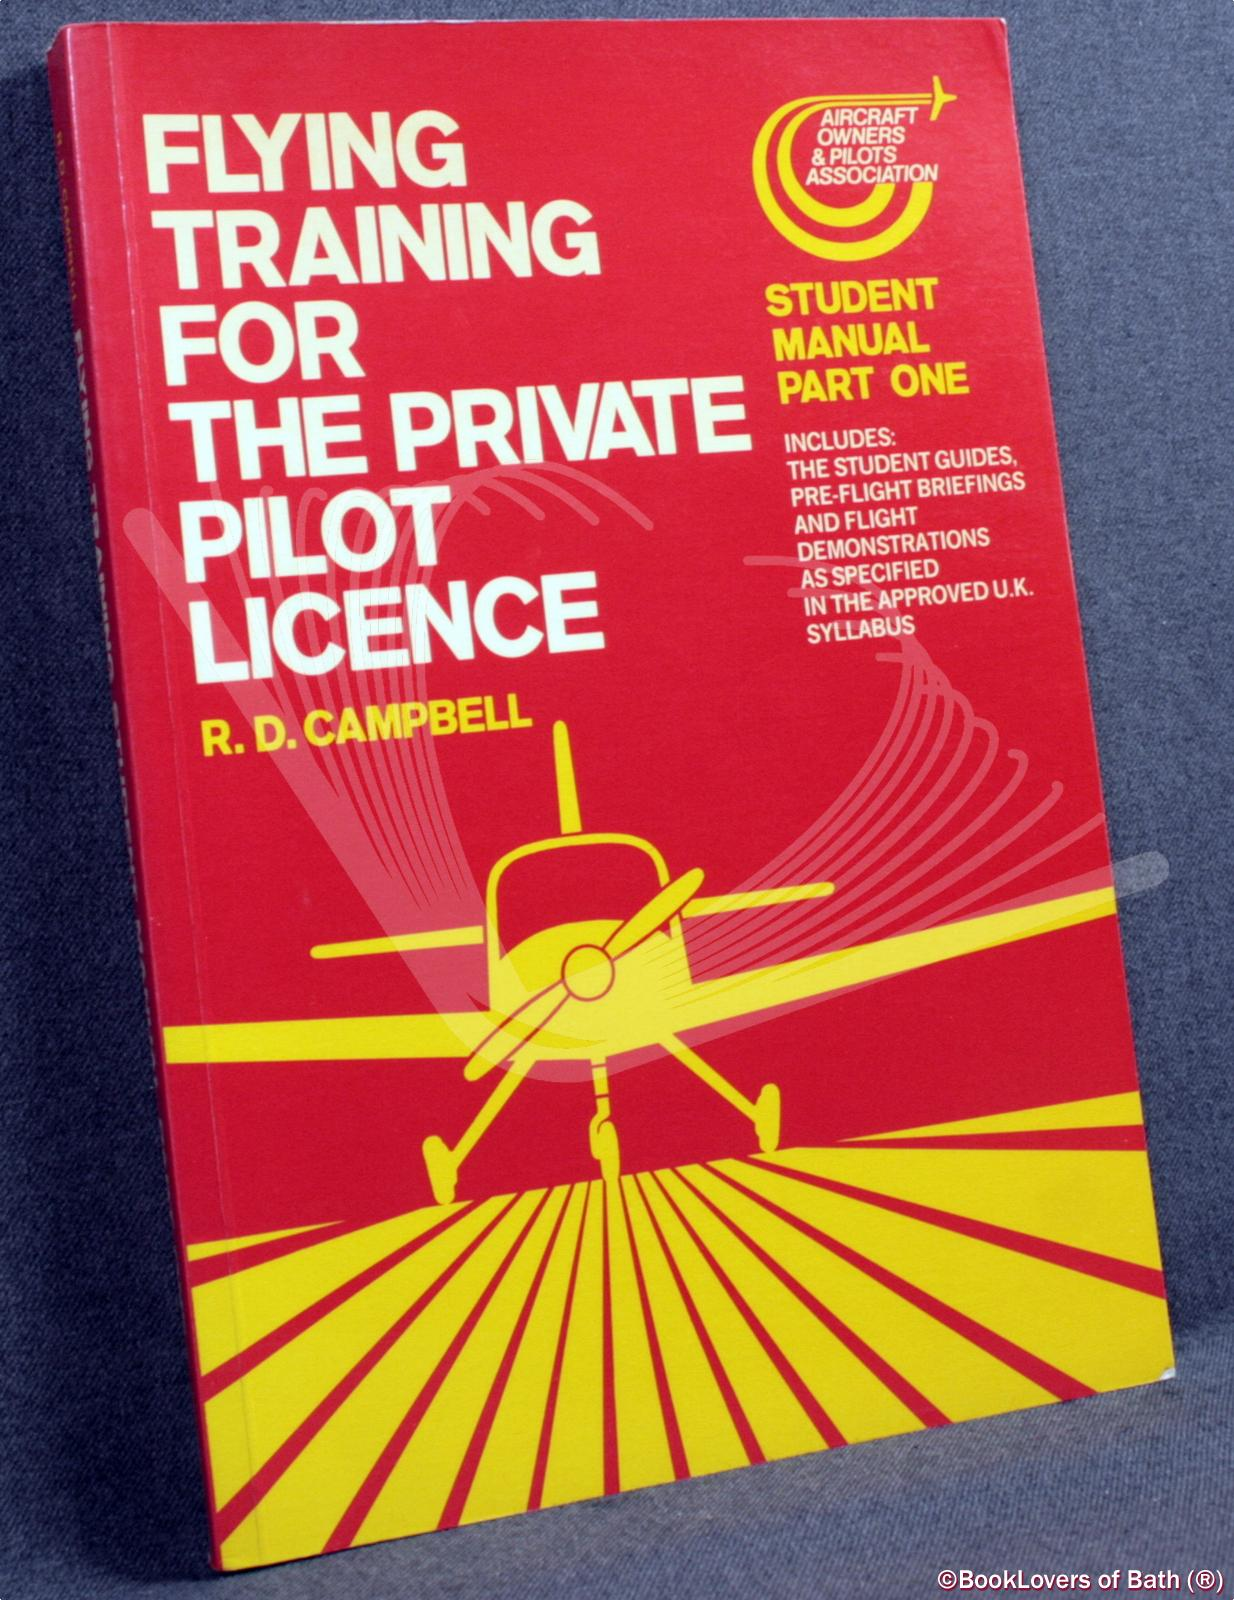 Flying Training for the Private Pilot Licence Student Manual Part One: Includes the Student Guides, Pre-Flight Briefings and Flight Demonstrations as Specified in the Approved U.K. Syllabus - R. [Ronald ]. D. Campbell